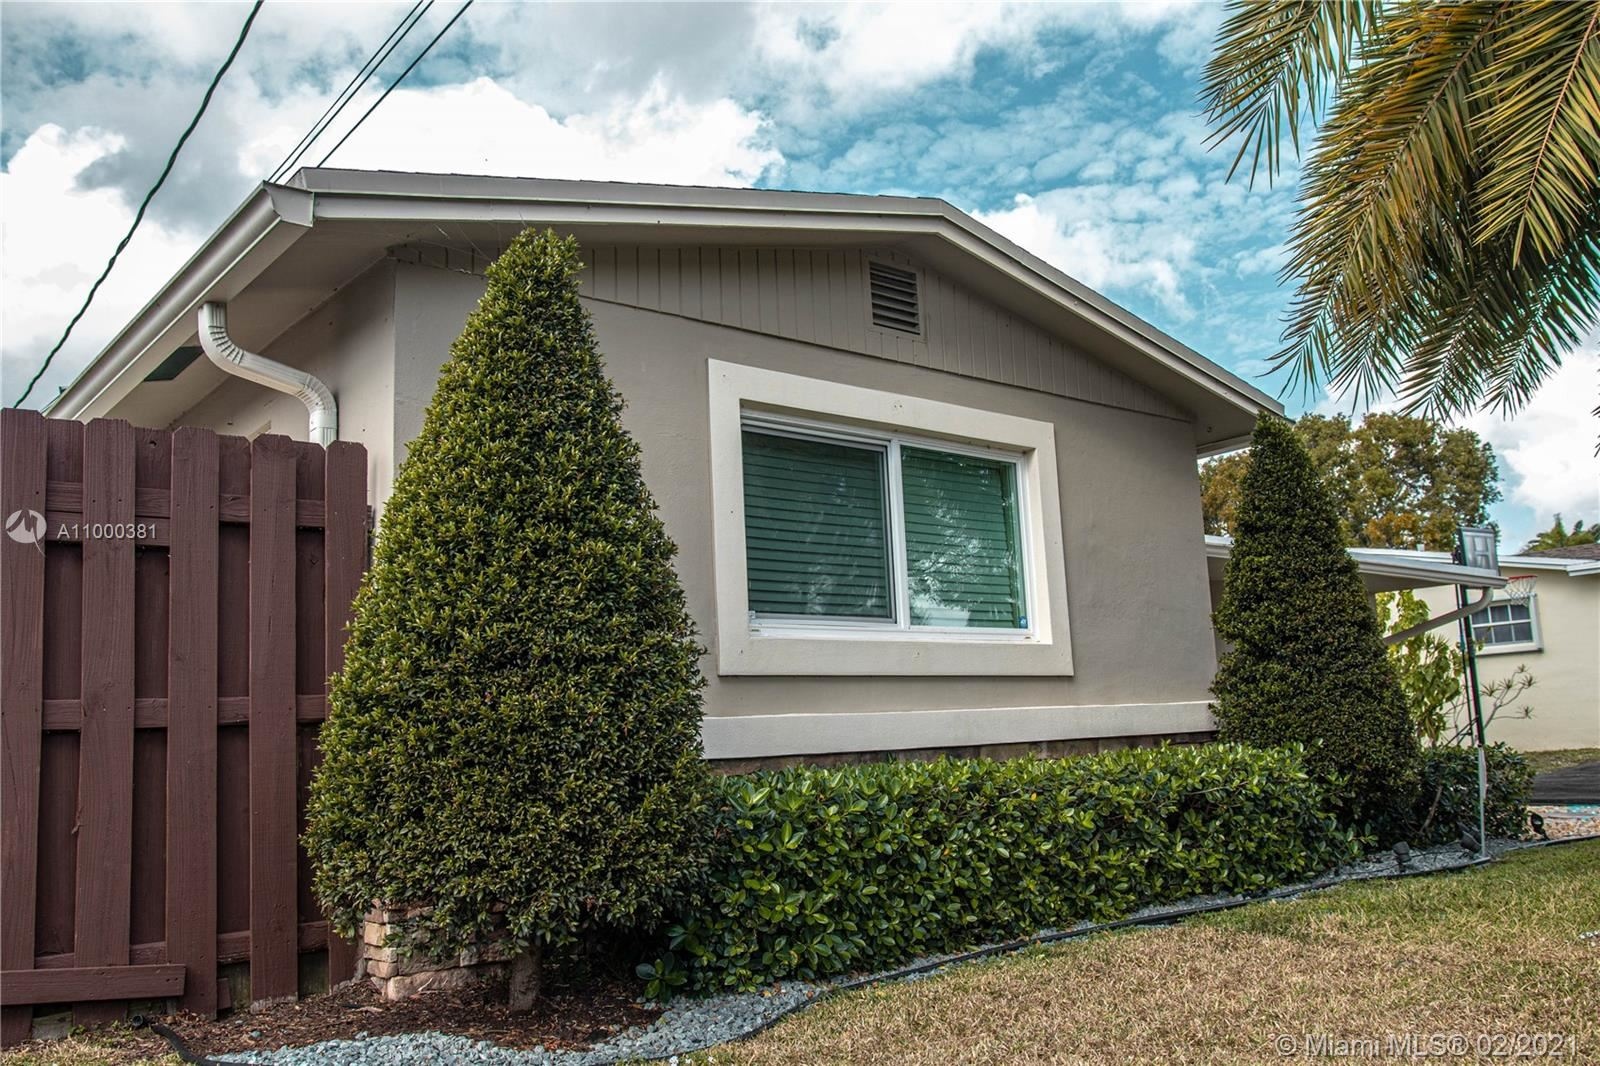 Photo of 5281 SW 95th Ave, Cooper City, FL 33328 (MLS # A11000381)